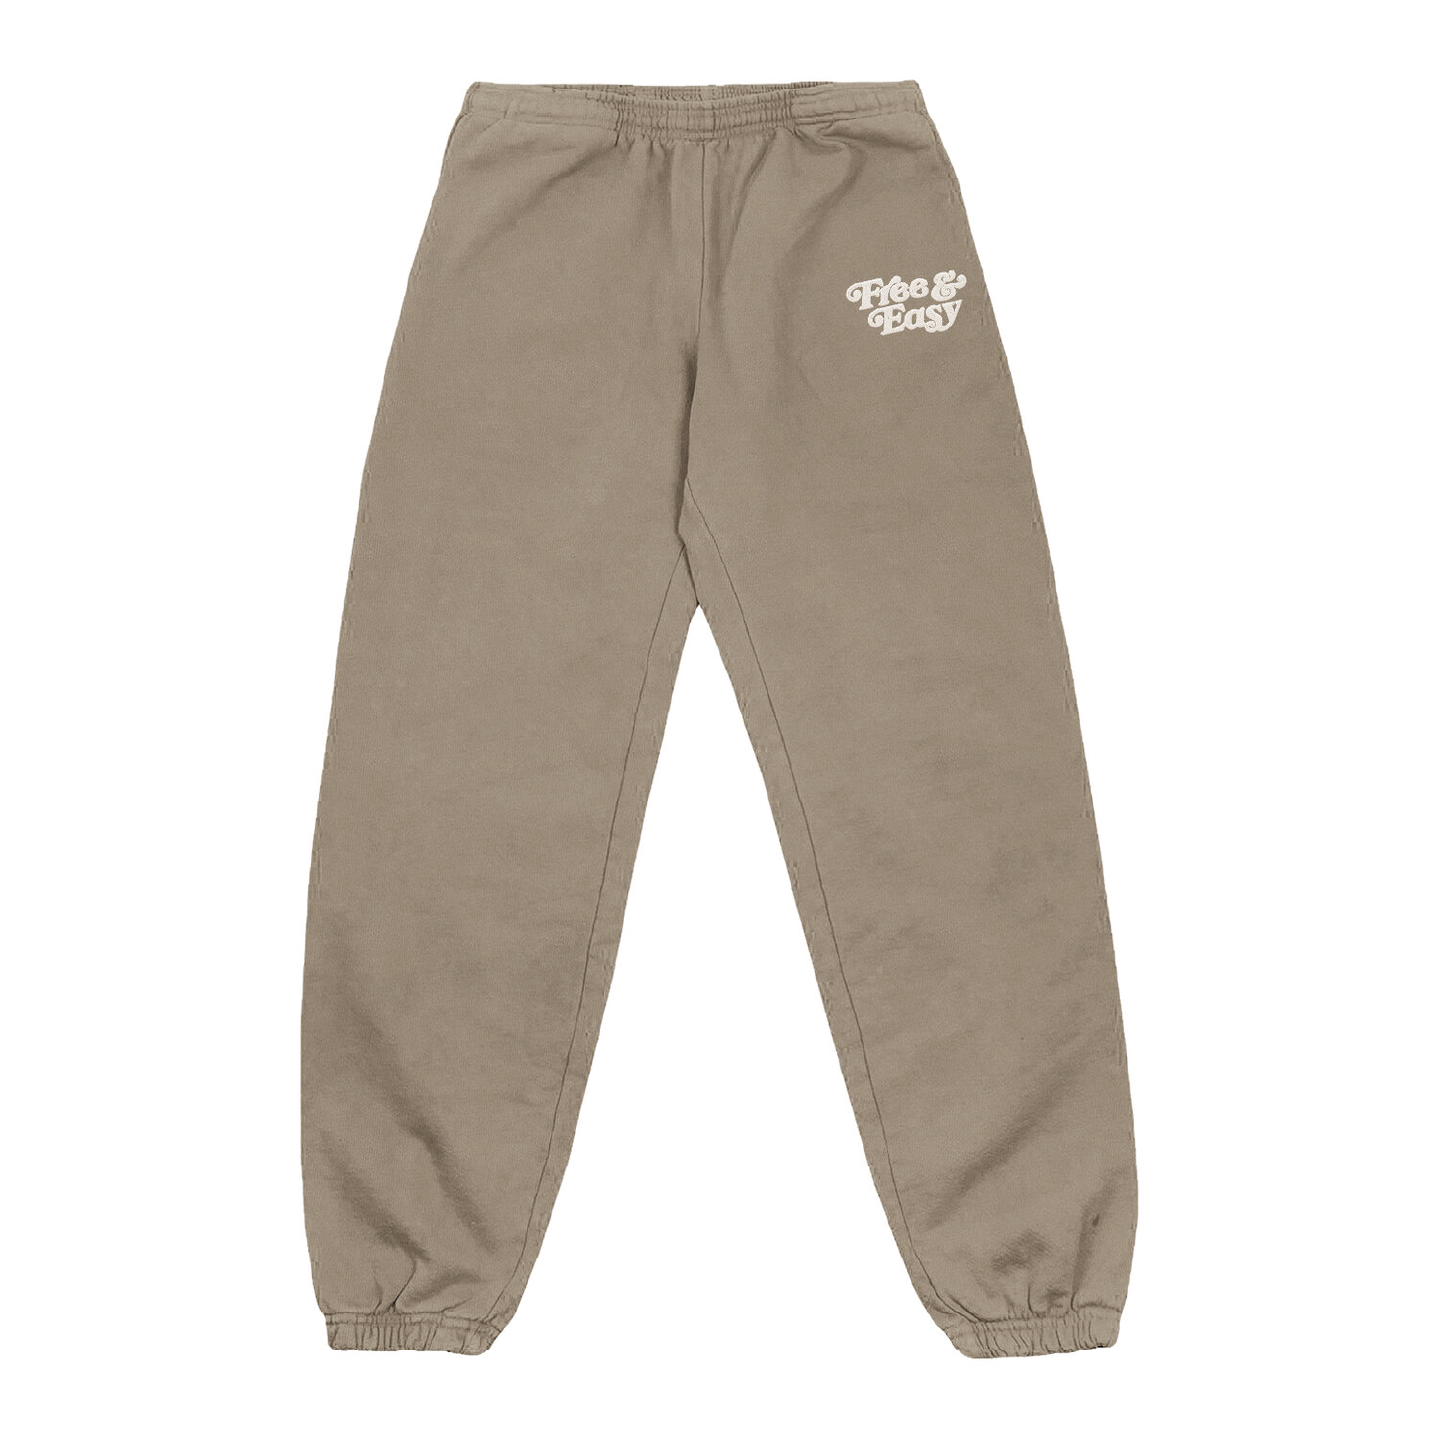 Free & Easy Heavy Fleece Sweatpants